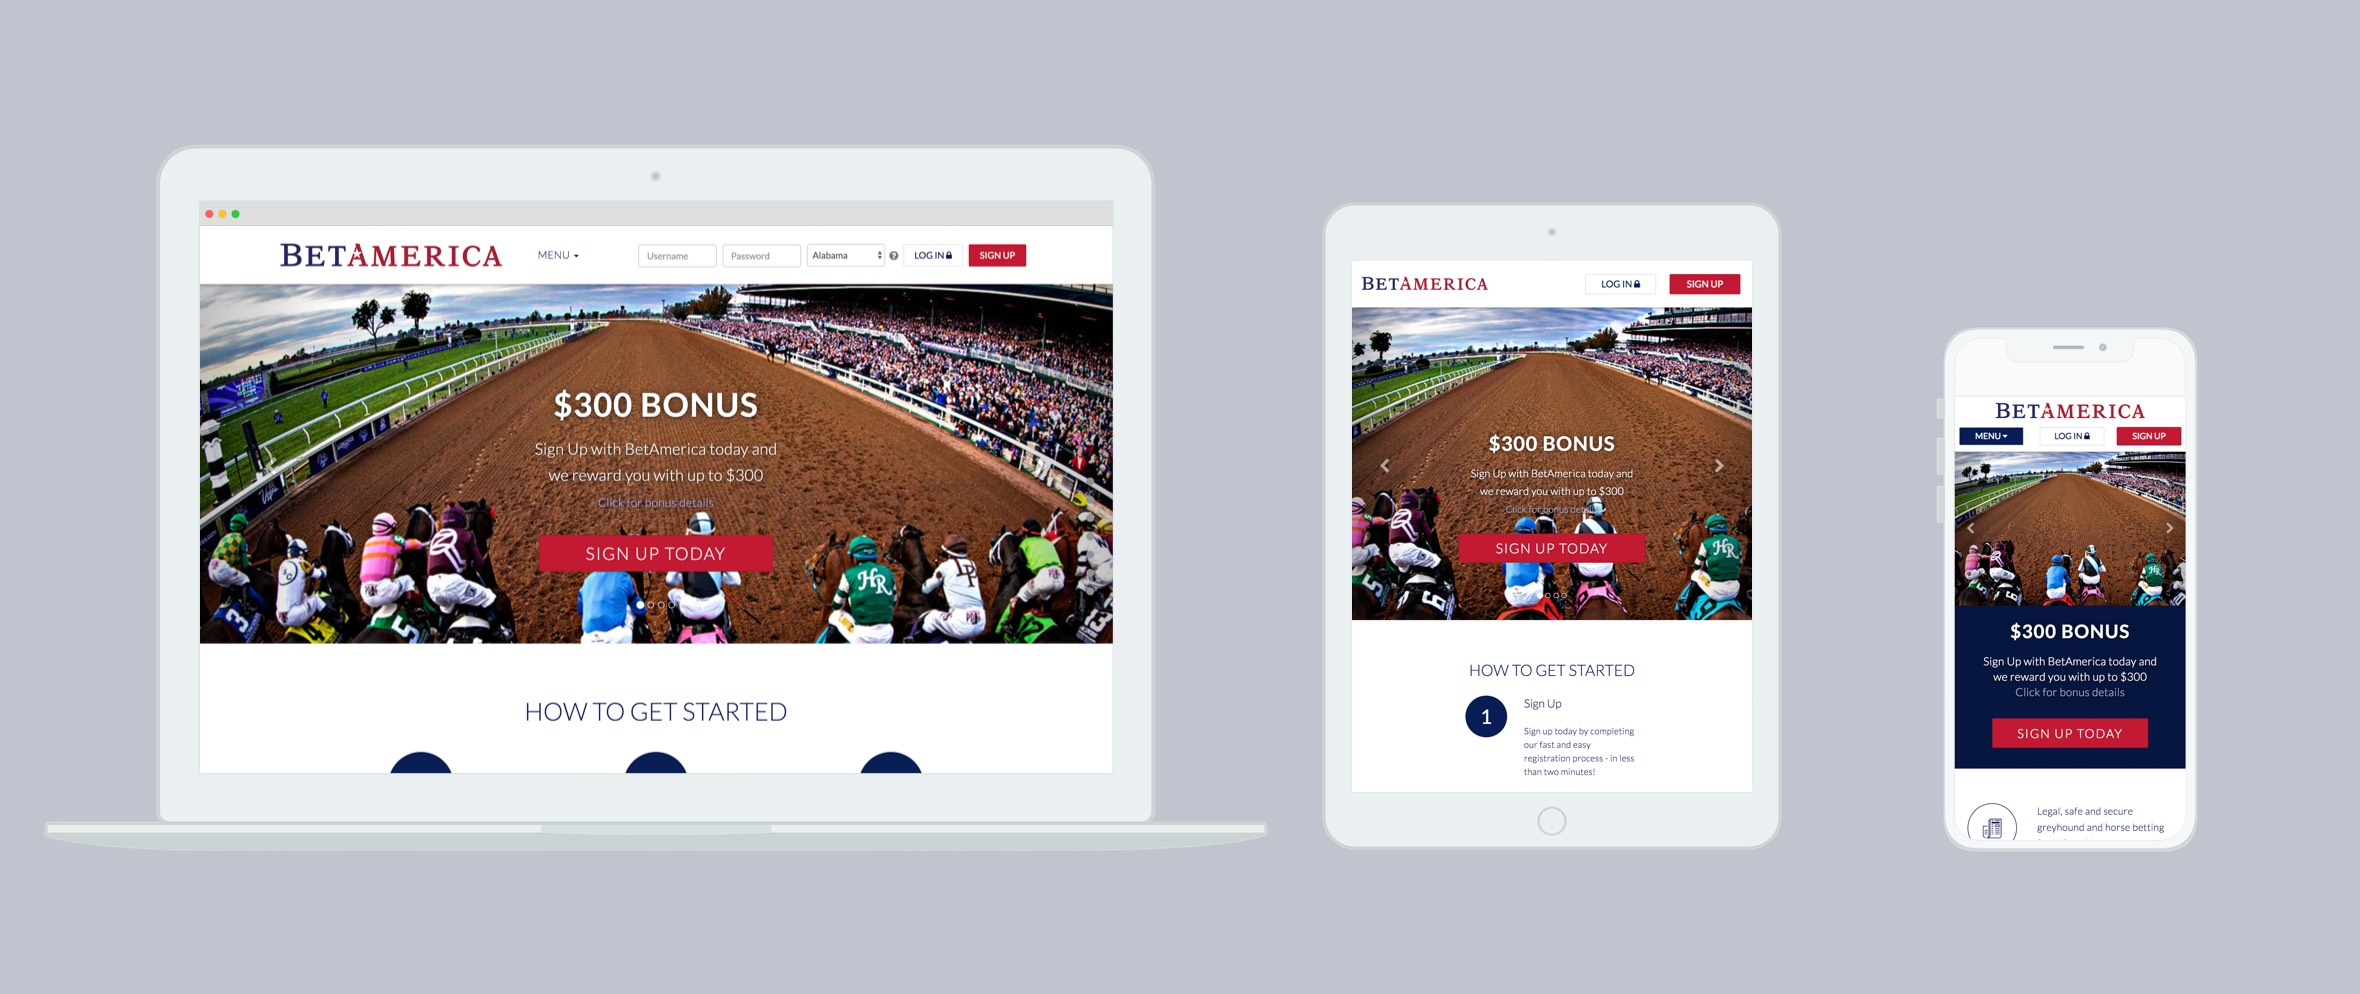 Laptop, tablet and smartphone displaying responsive BetAmerica website